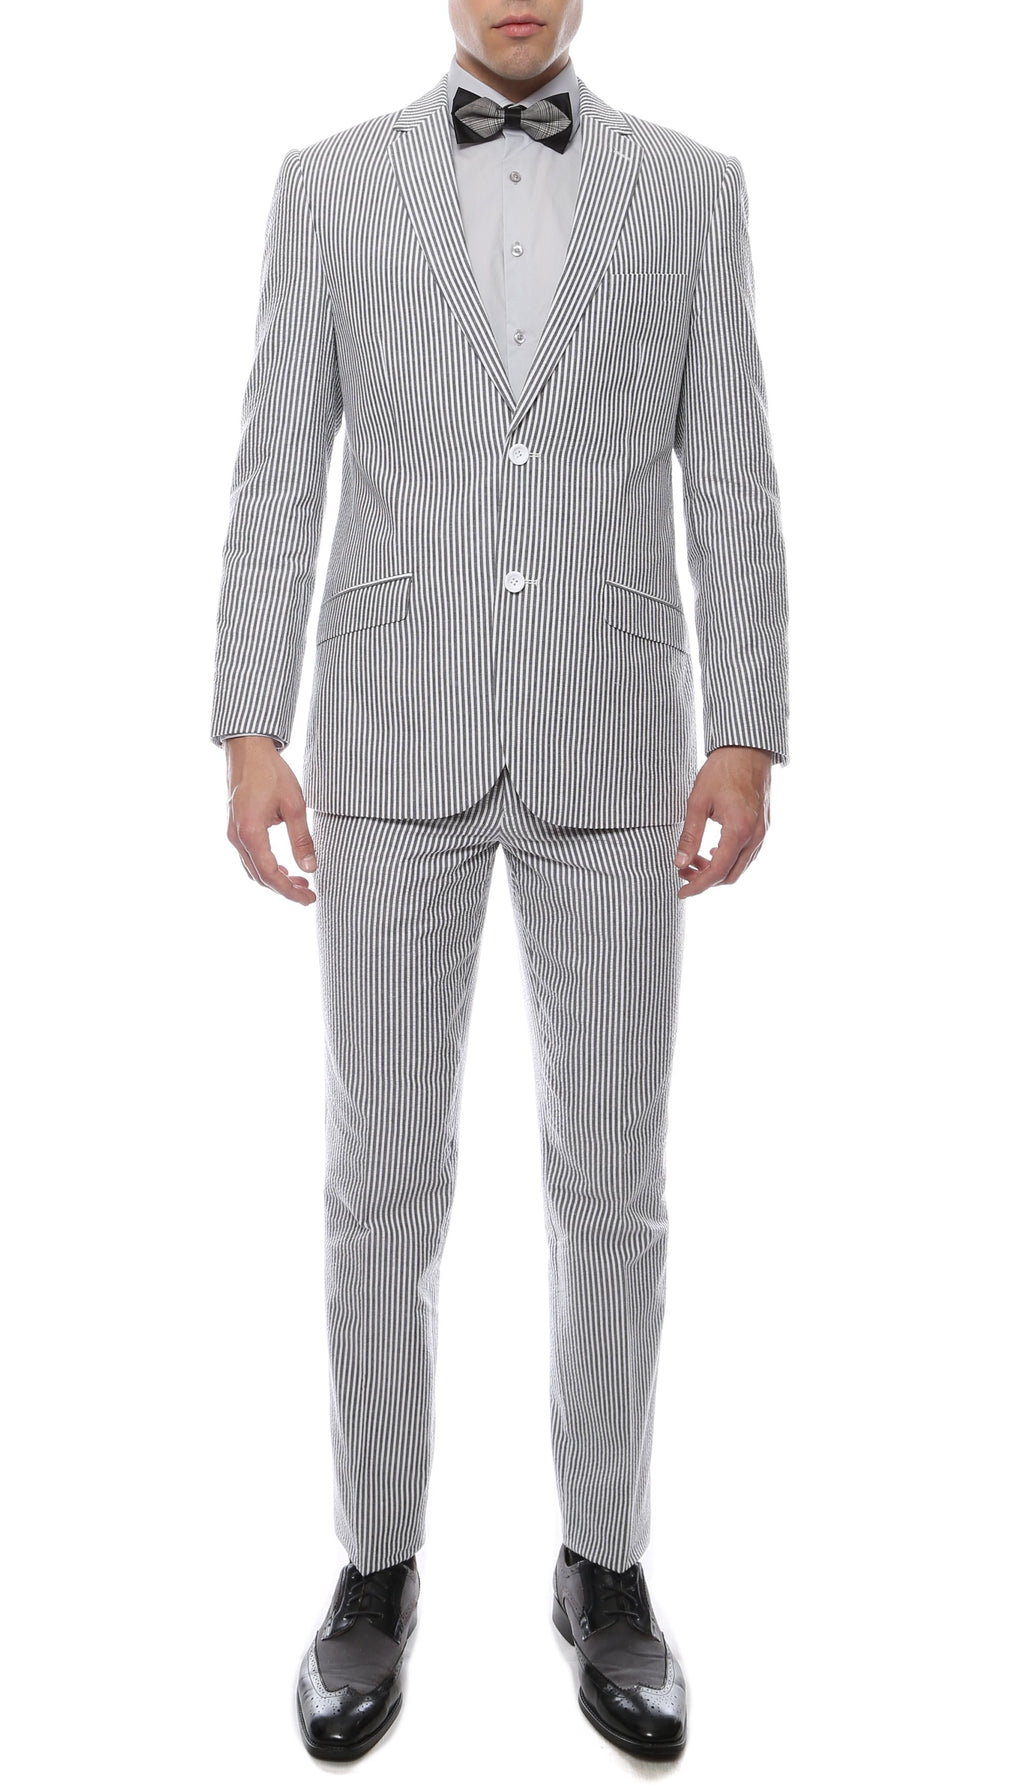 Premium Comfort Cotton Slim Black Seersucker Suit - Giorgio's Menswear